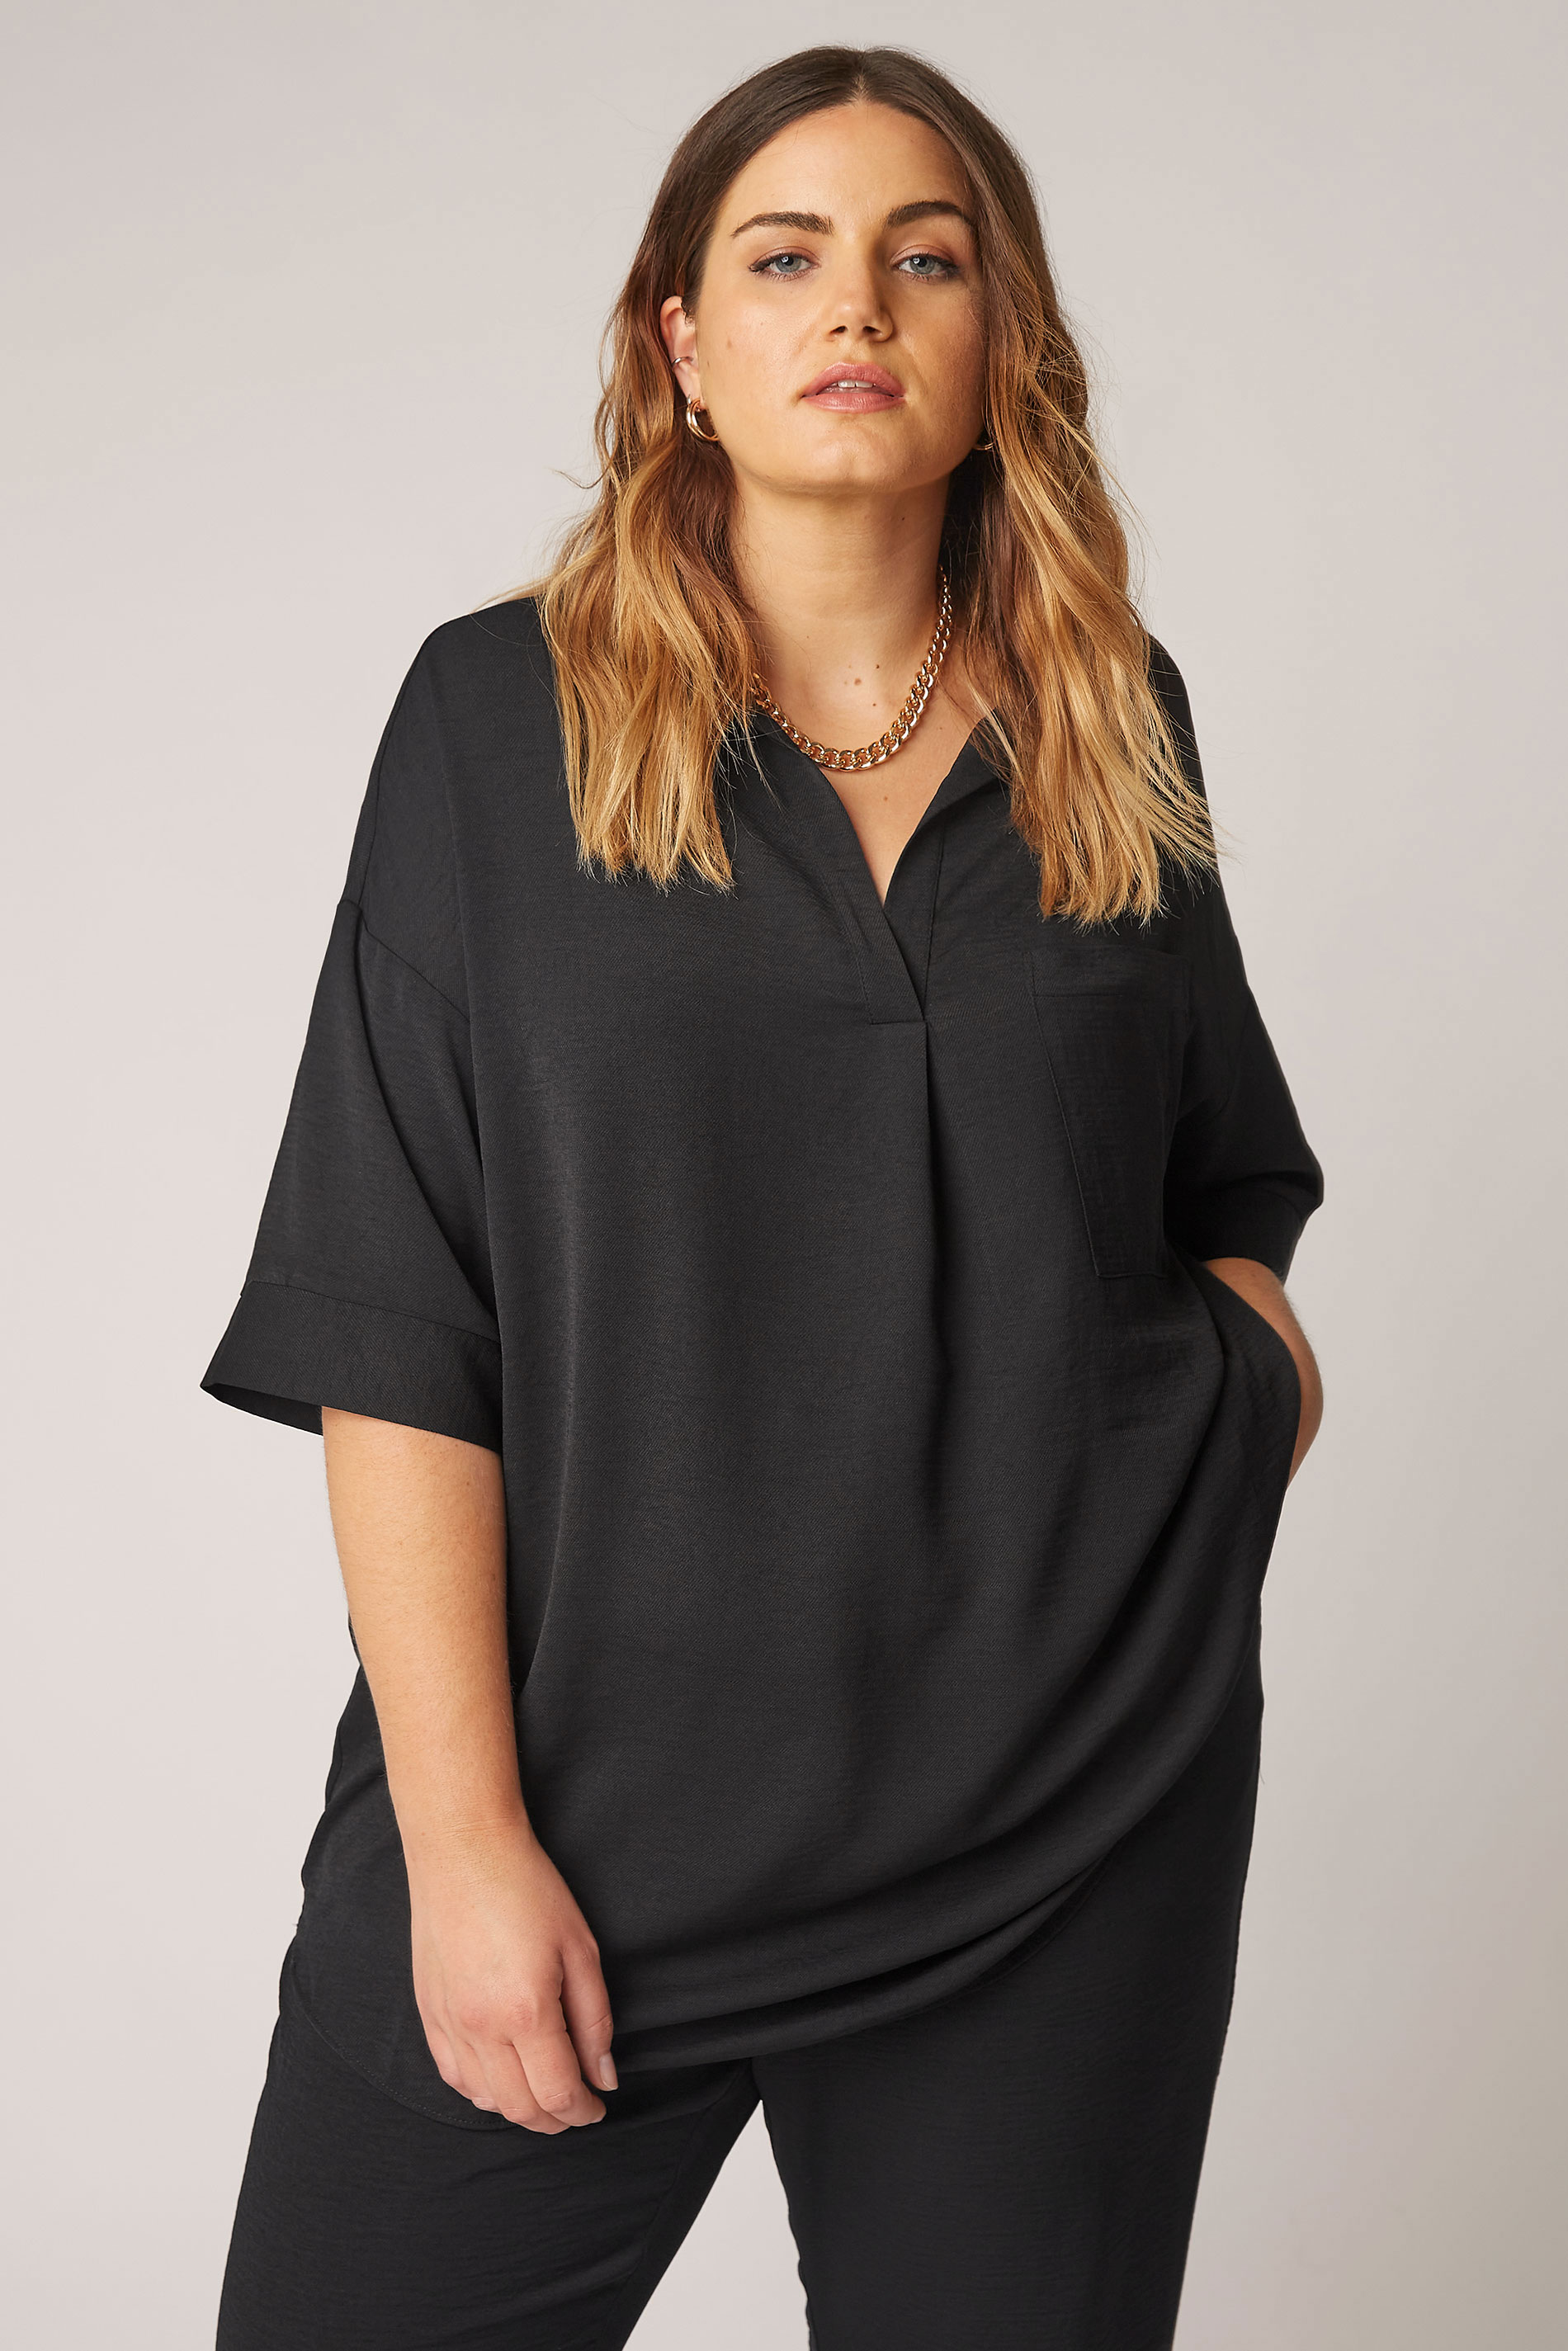 THE LIMITED EDIT Black Pleated Front Top_A.jpg